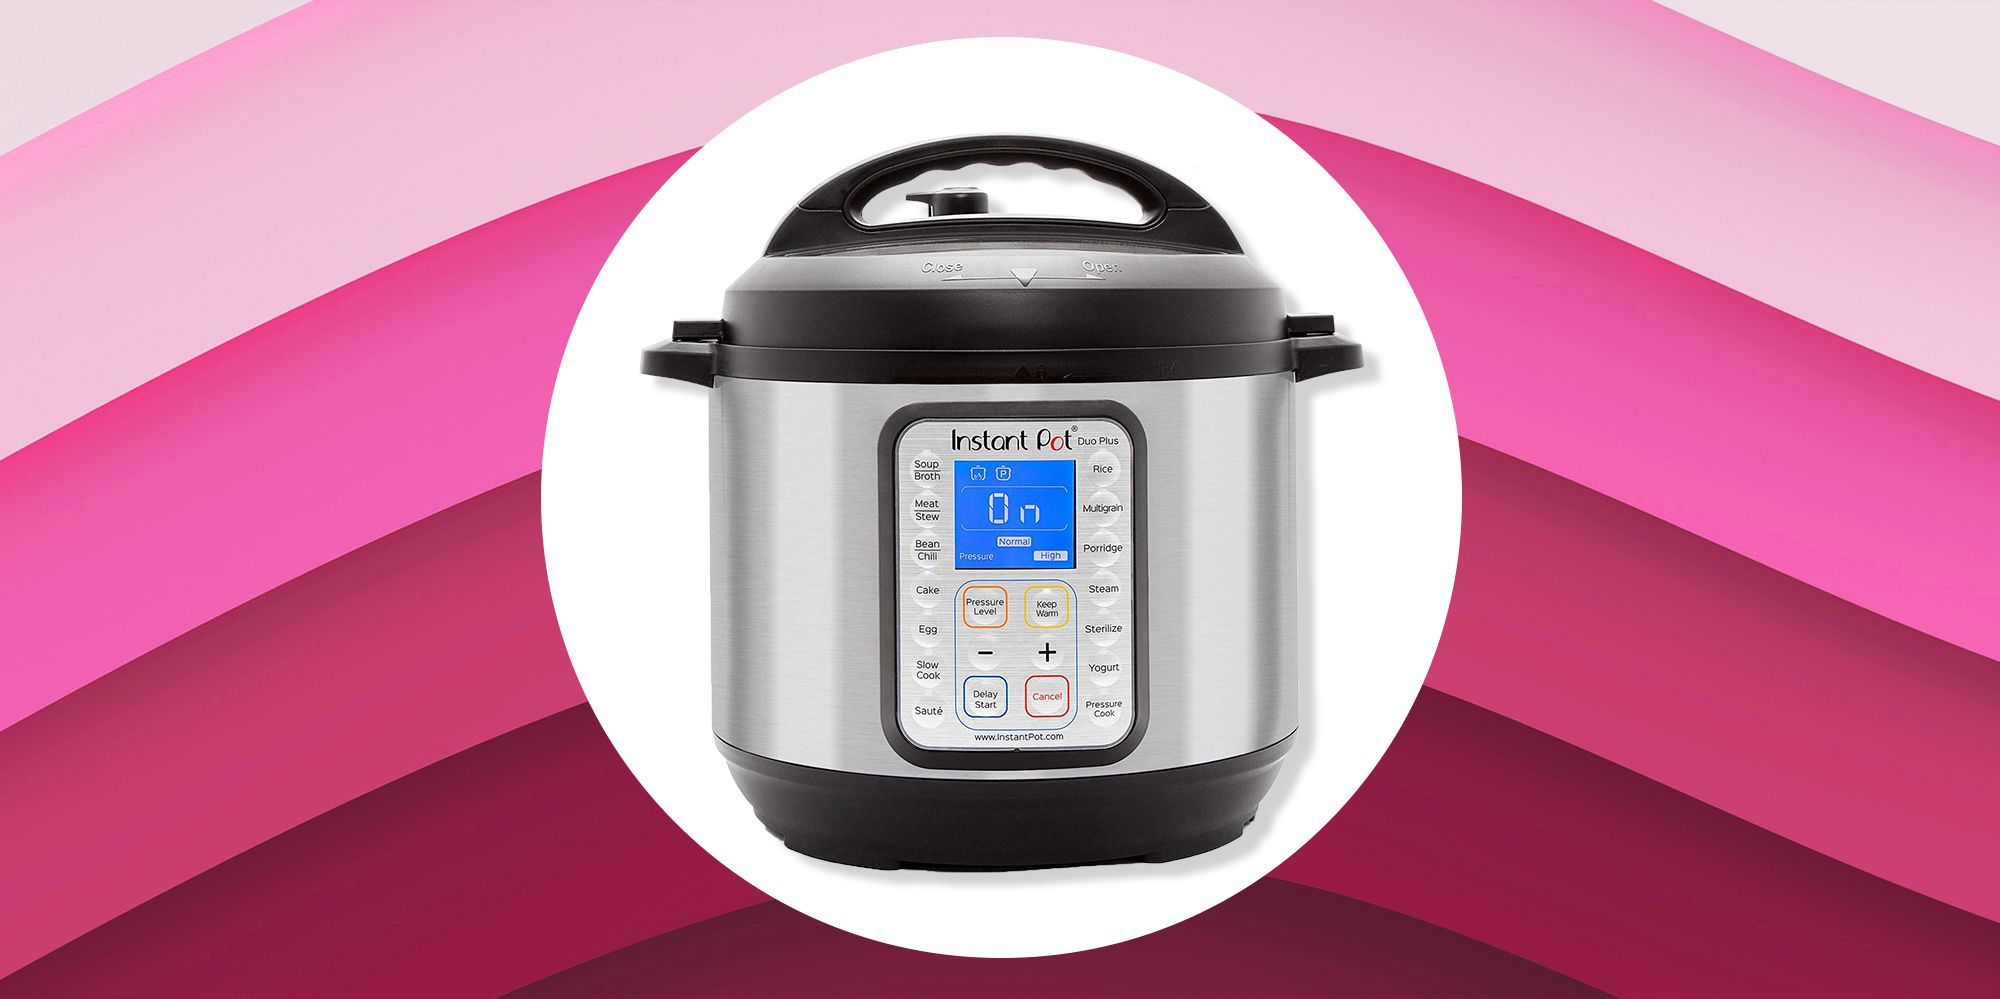 The Instant Pot 6-Quart Duo Plus Is On Sale For 50 Percent Off On Amazon After Cyber Monday